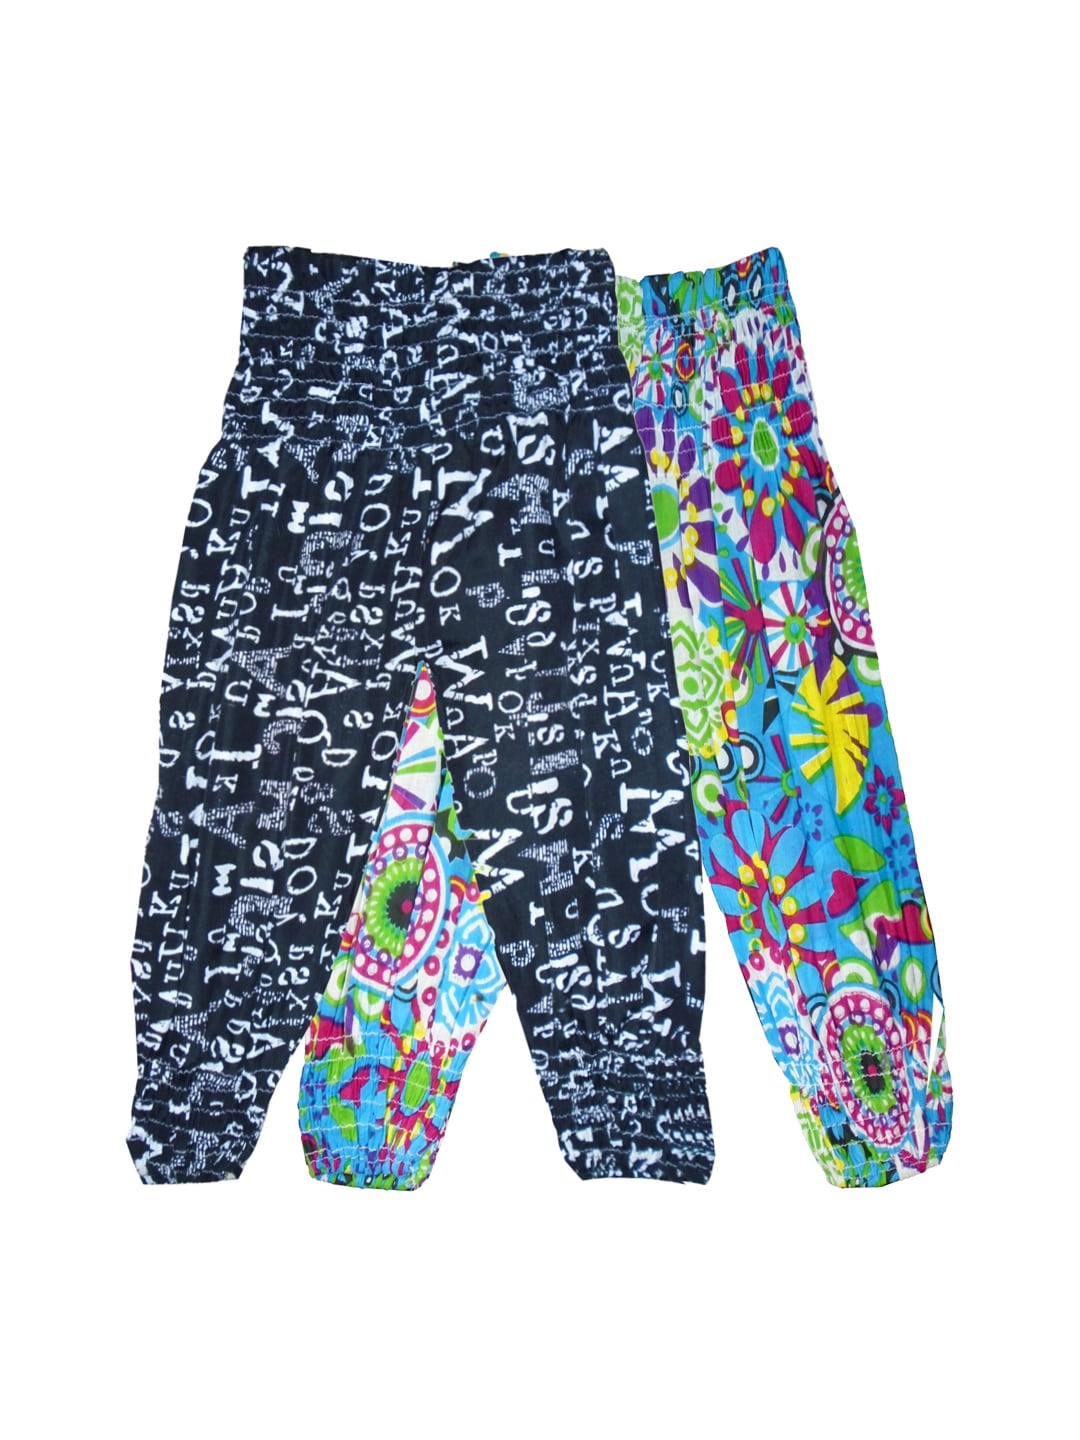 SWEET ANGEL Girls Pack of 2 Printed Harem Pants